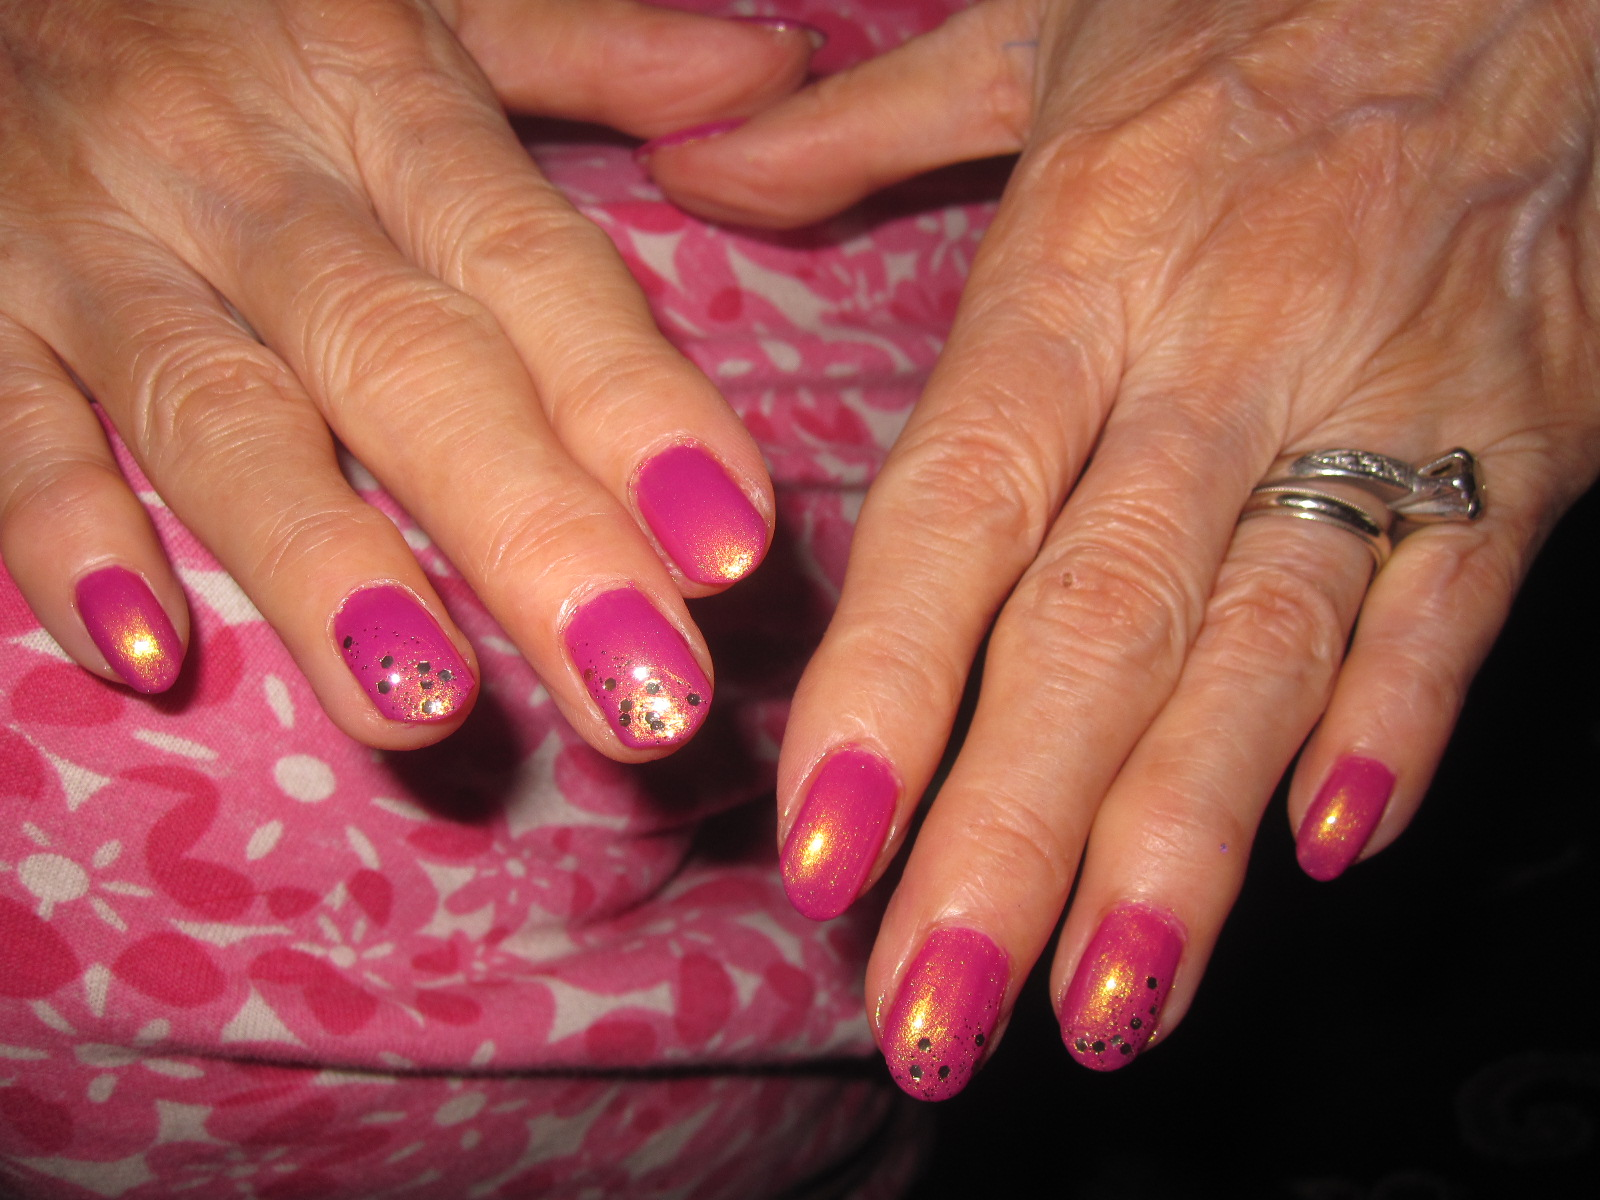 Mother's Day, I decided to paint my Grandma's nails! Here they are